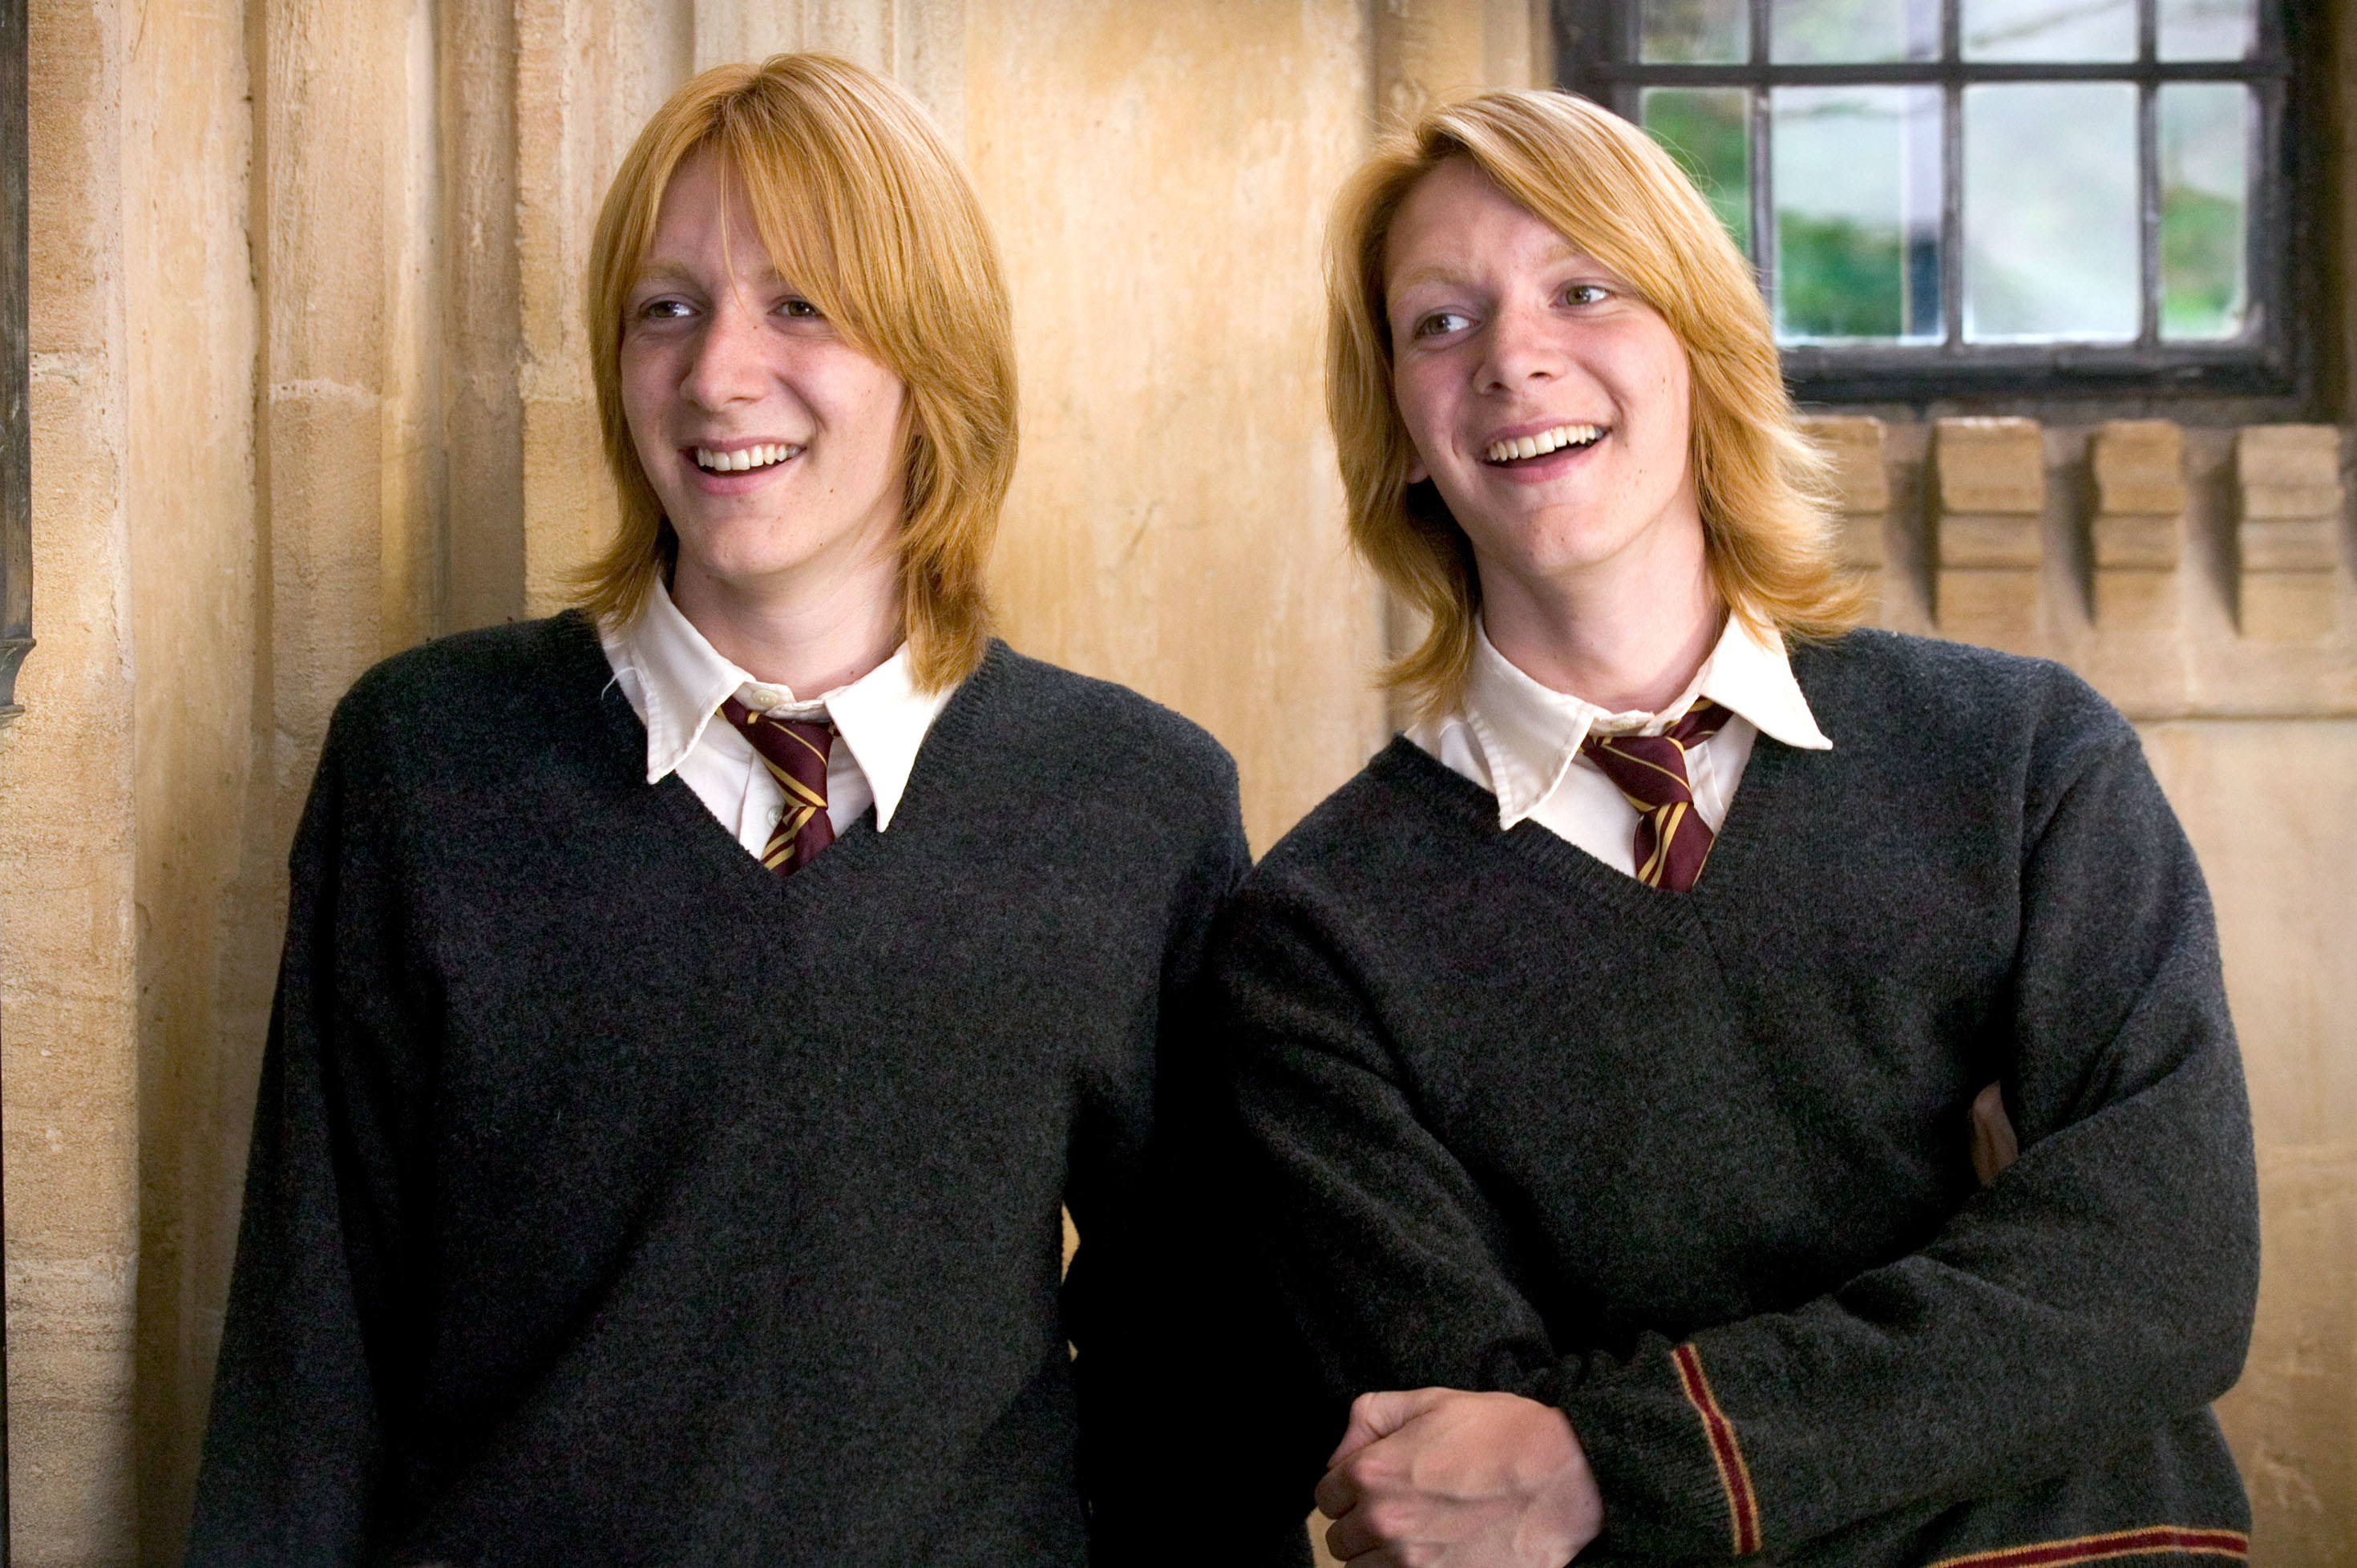 Fred and George laughing together